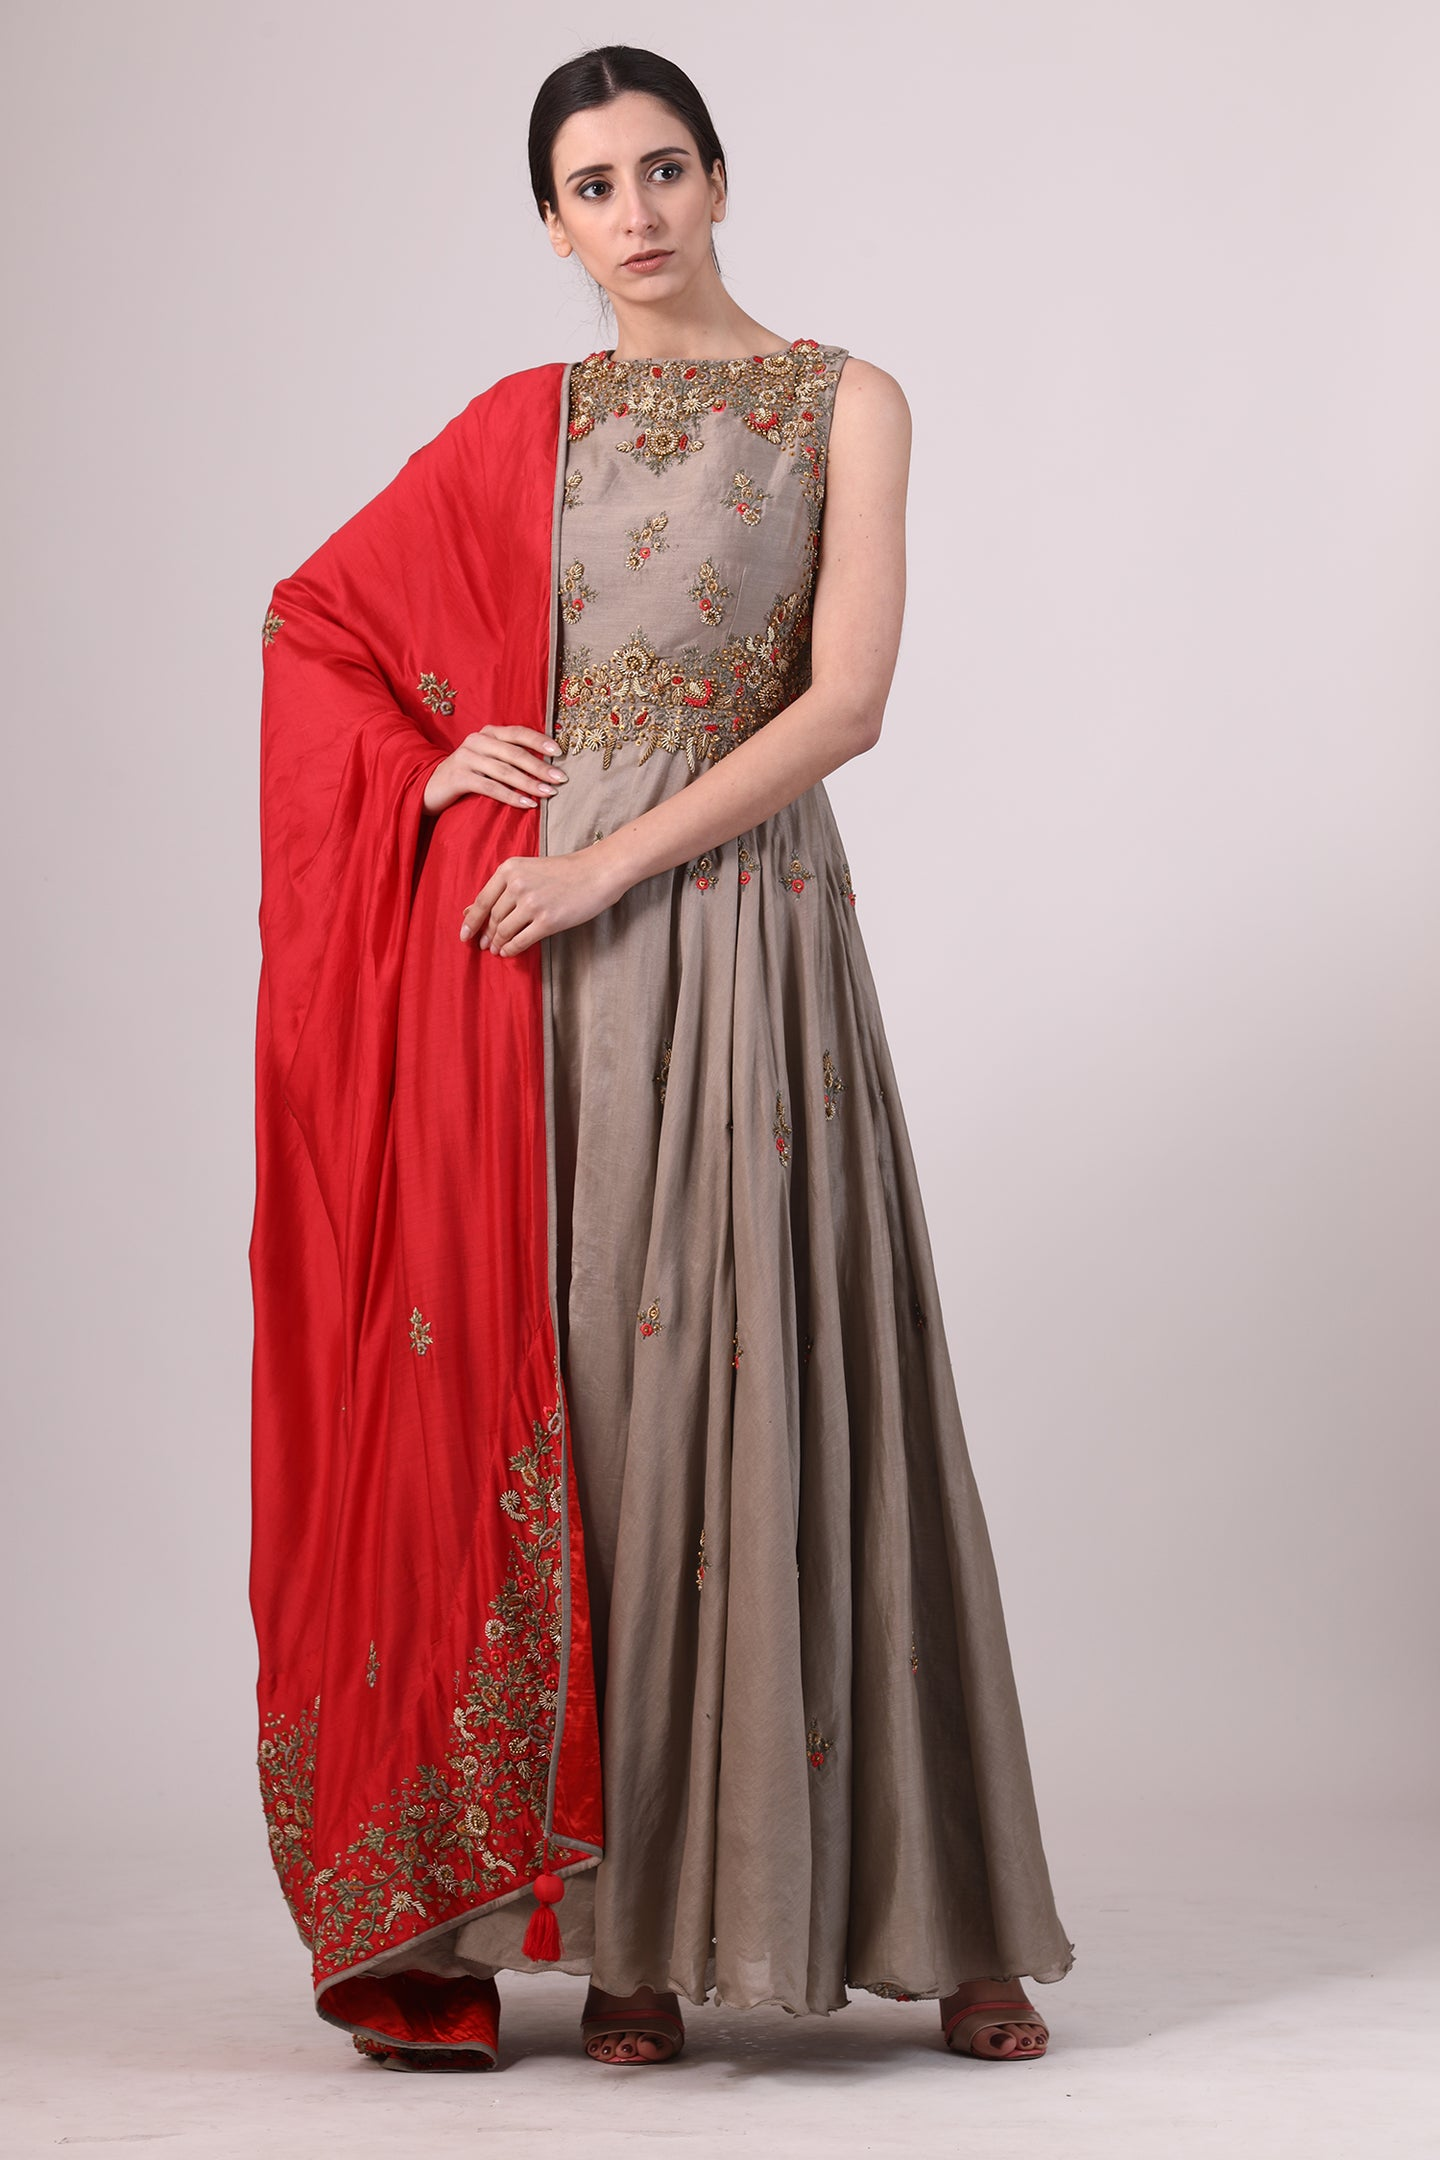 Embriodered Floor-Length Kurta & Dupatta.